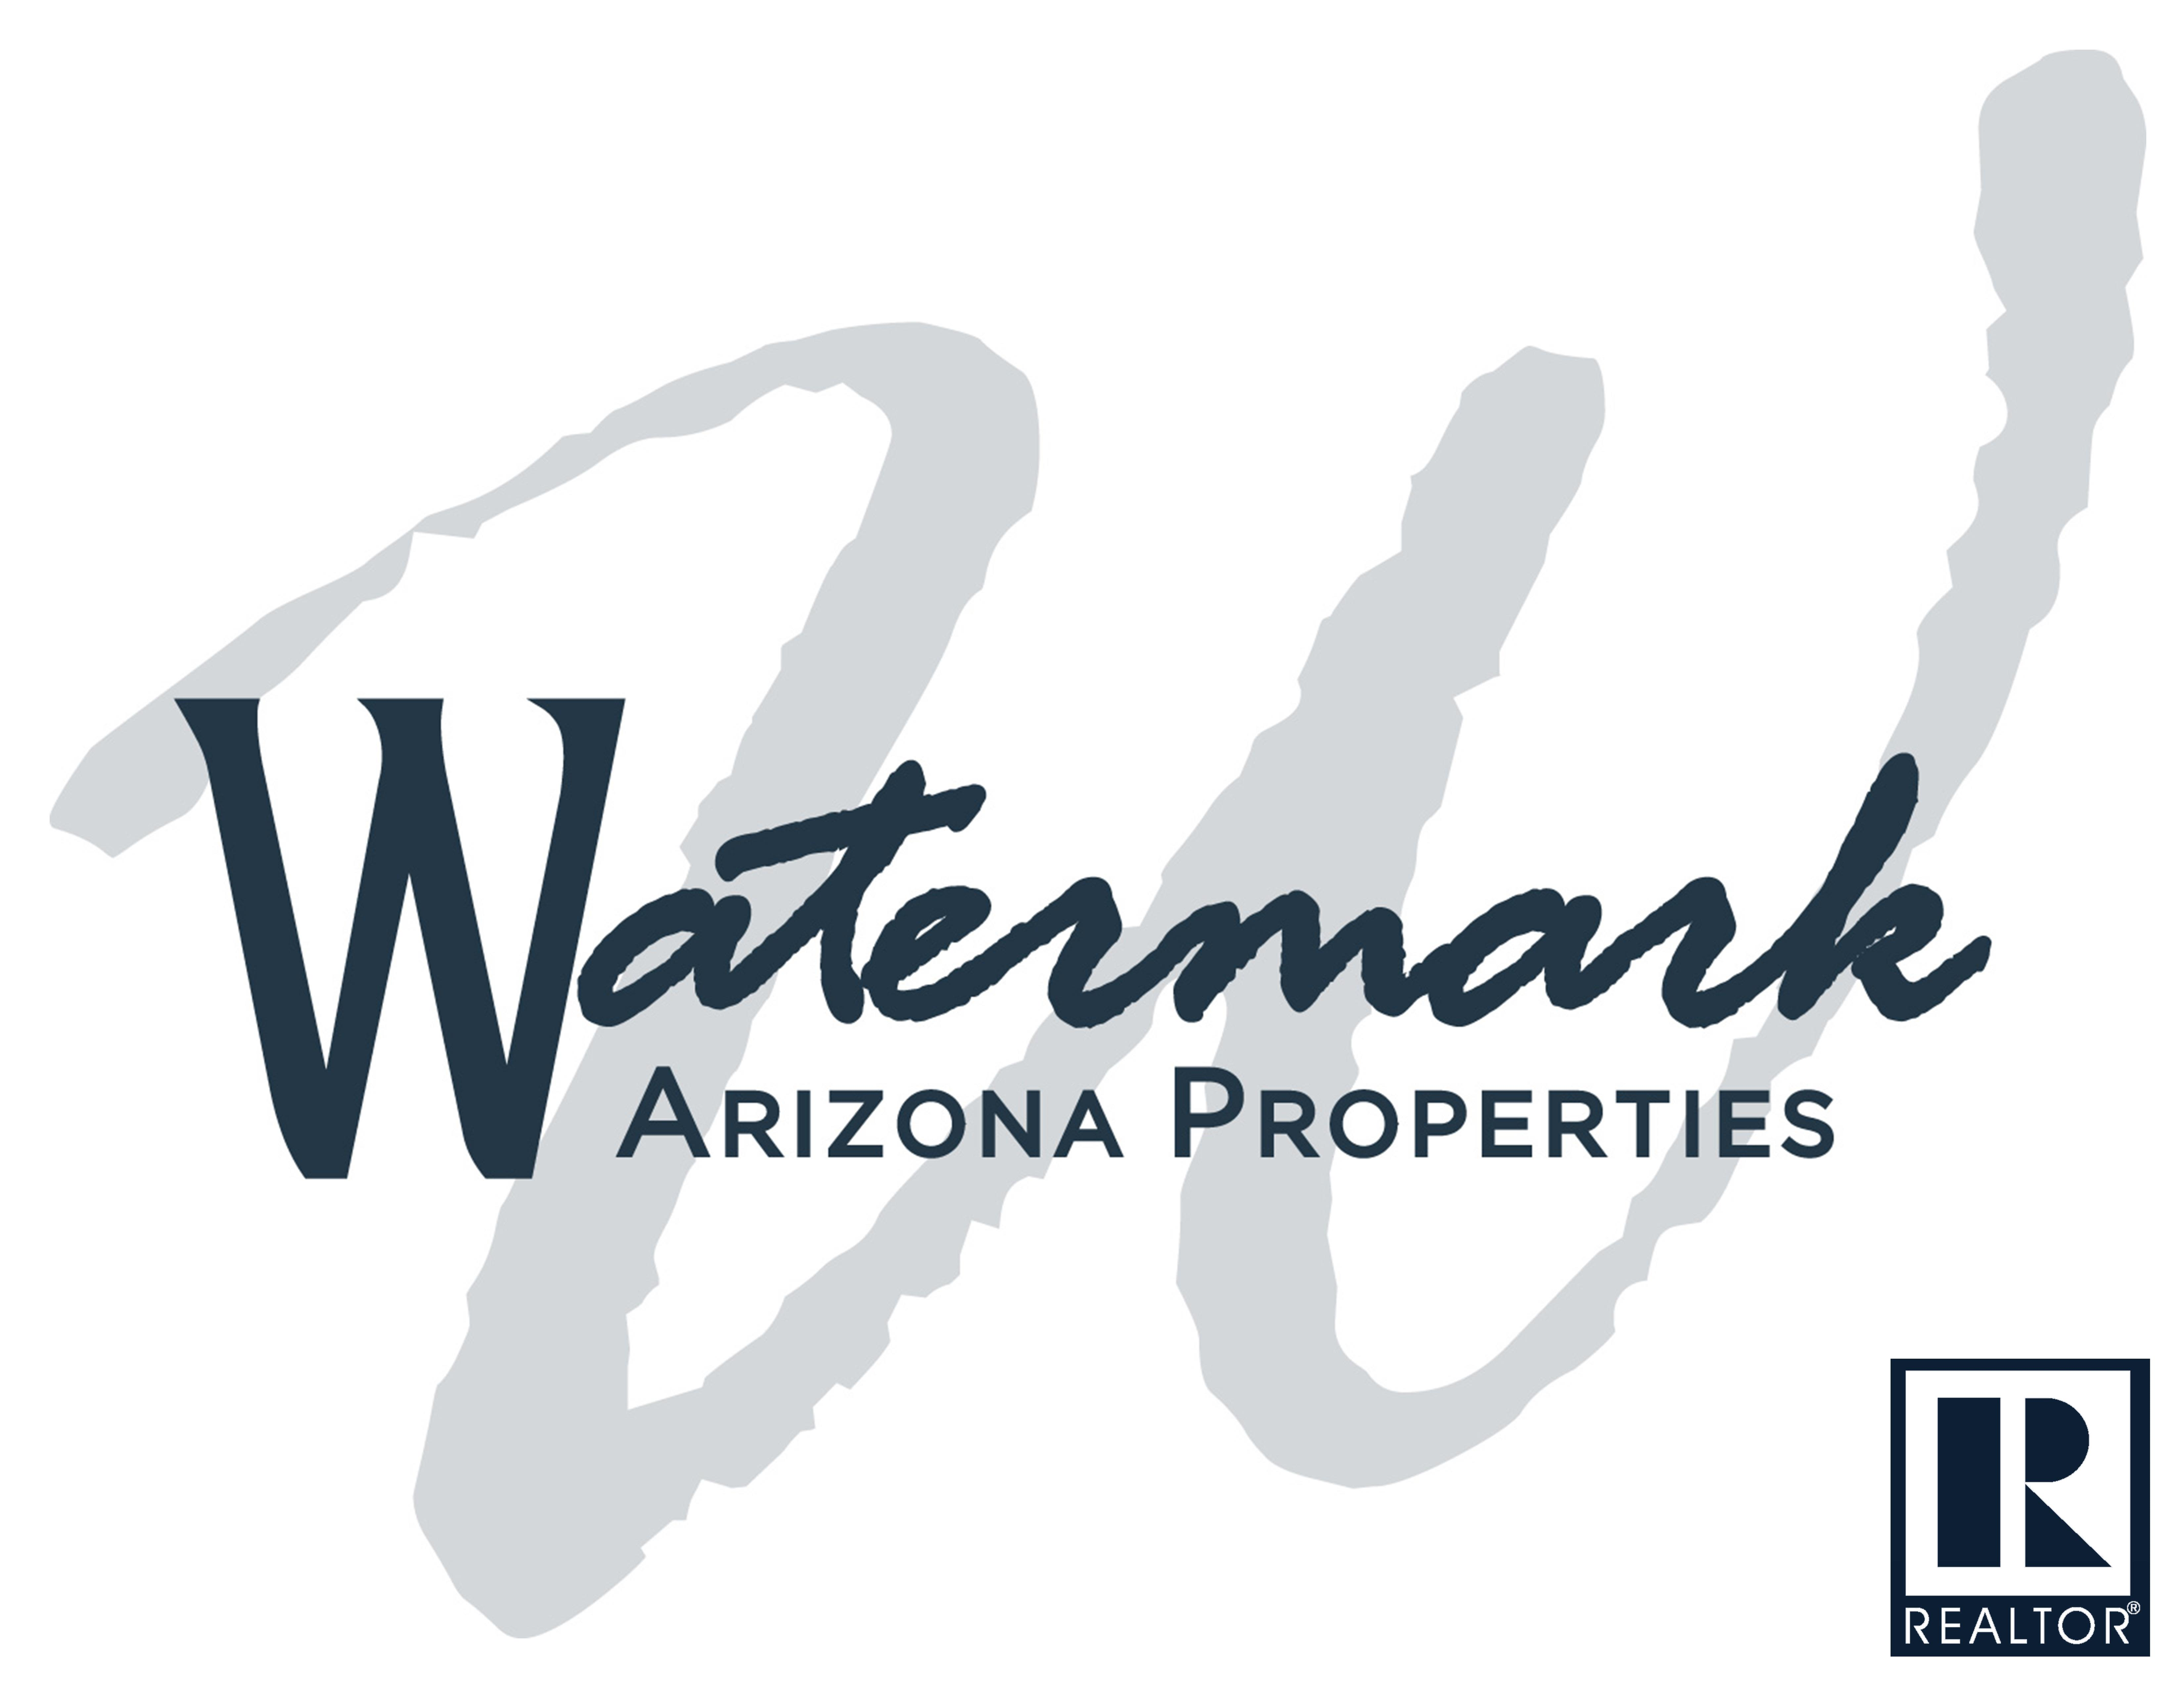 Watermark Arizona Properties